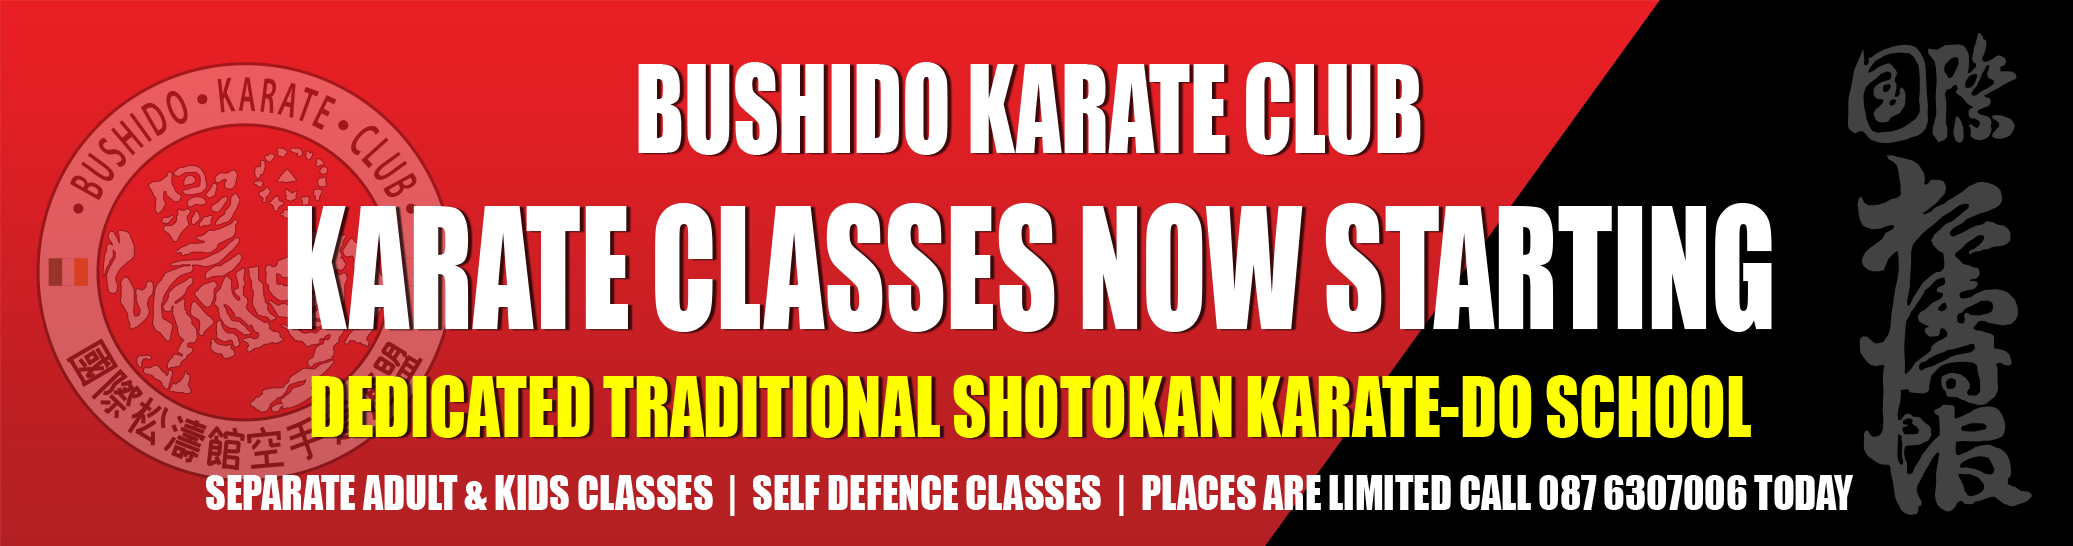 Karate Kids Classes Now Starting at Bushido.  Call 0876307006 for more information